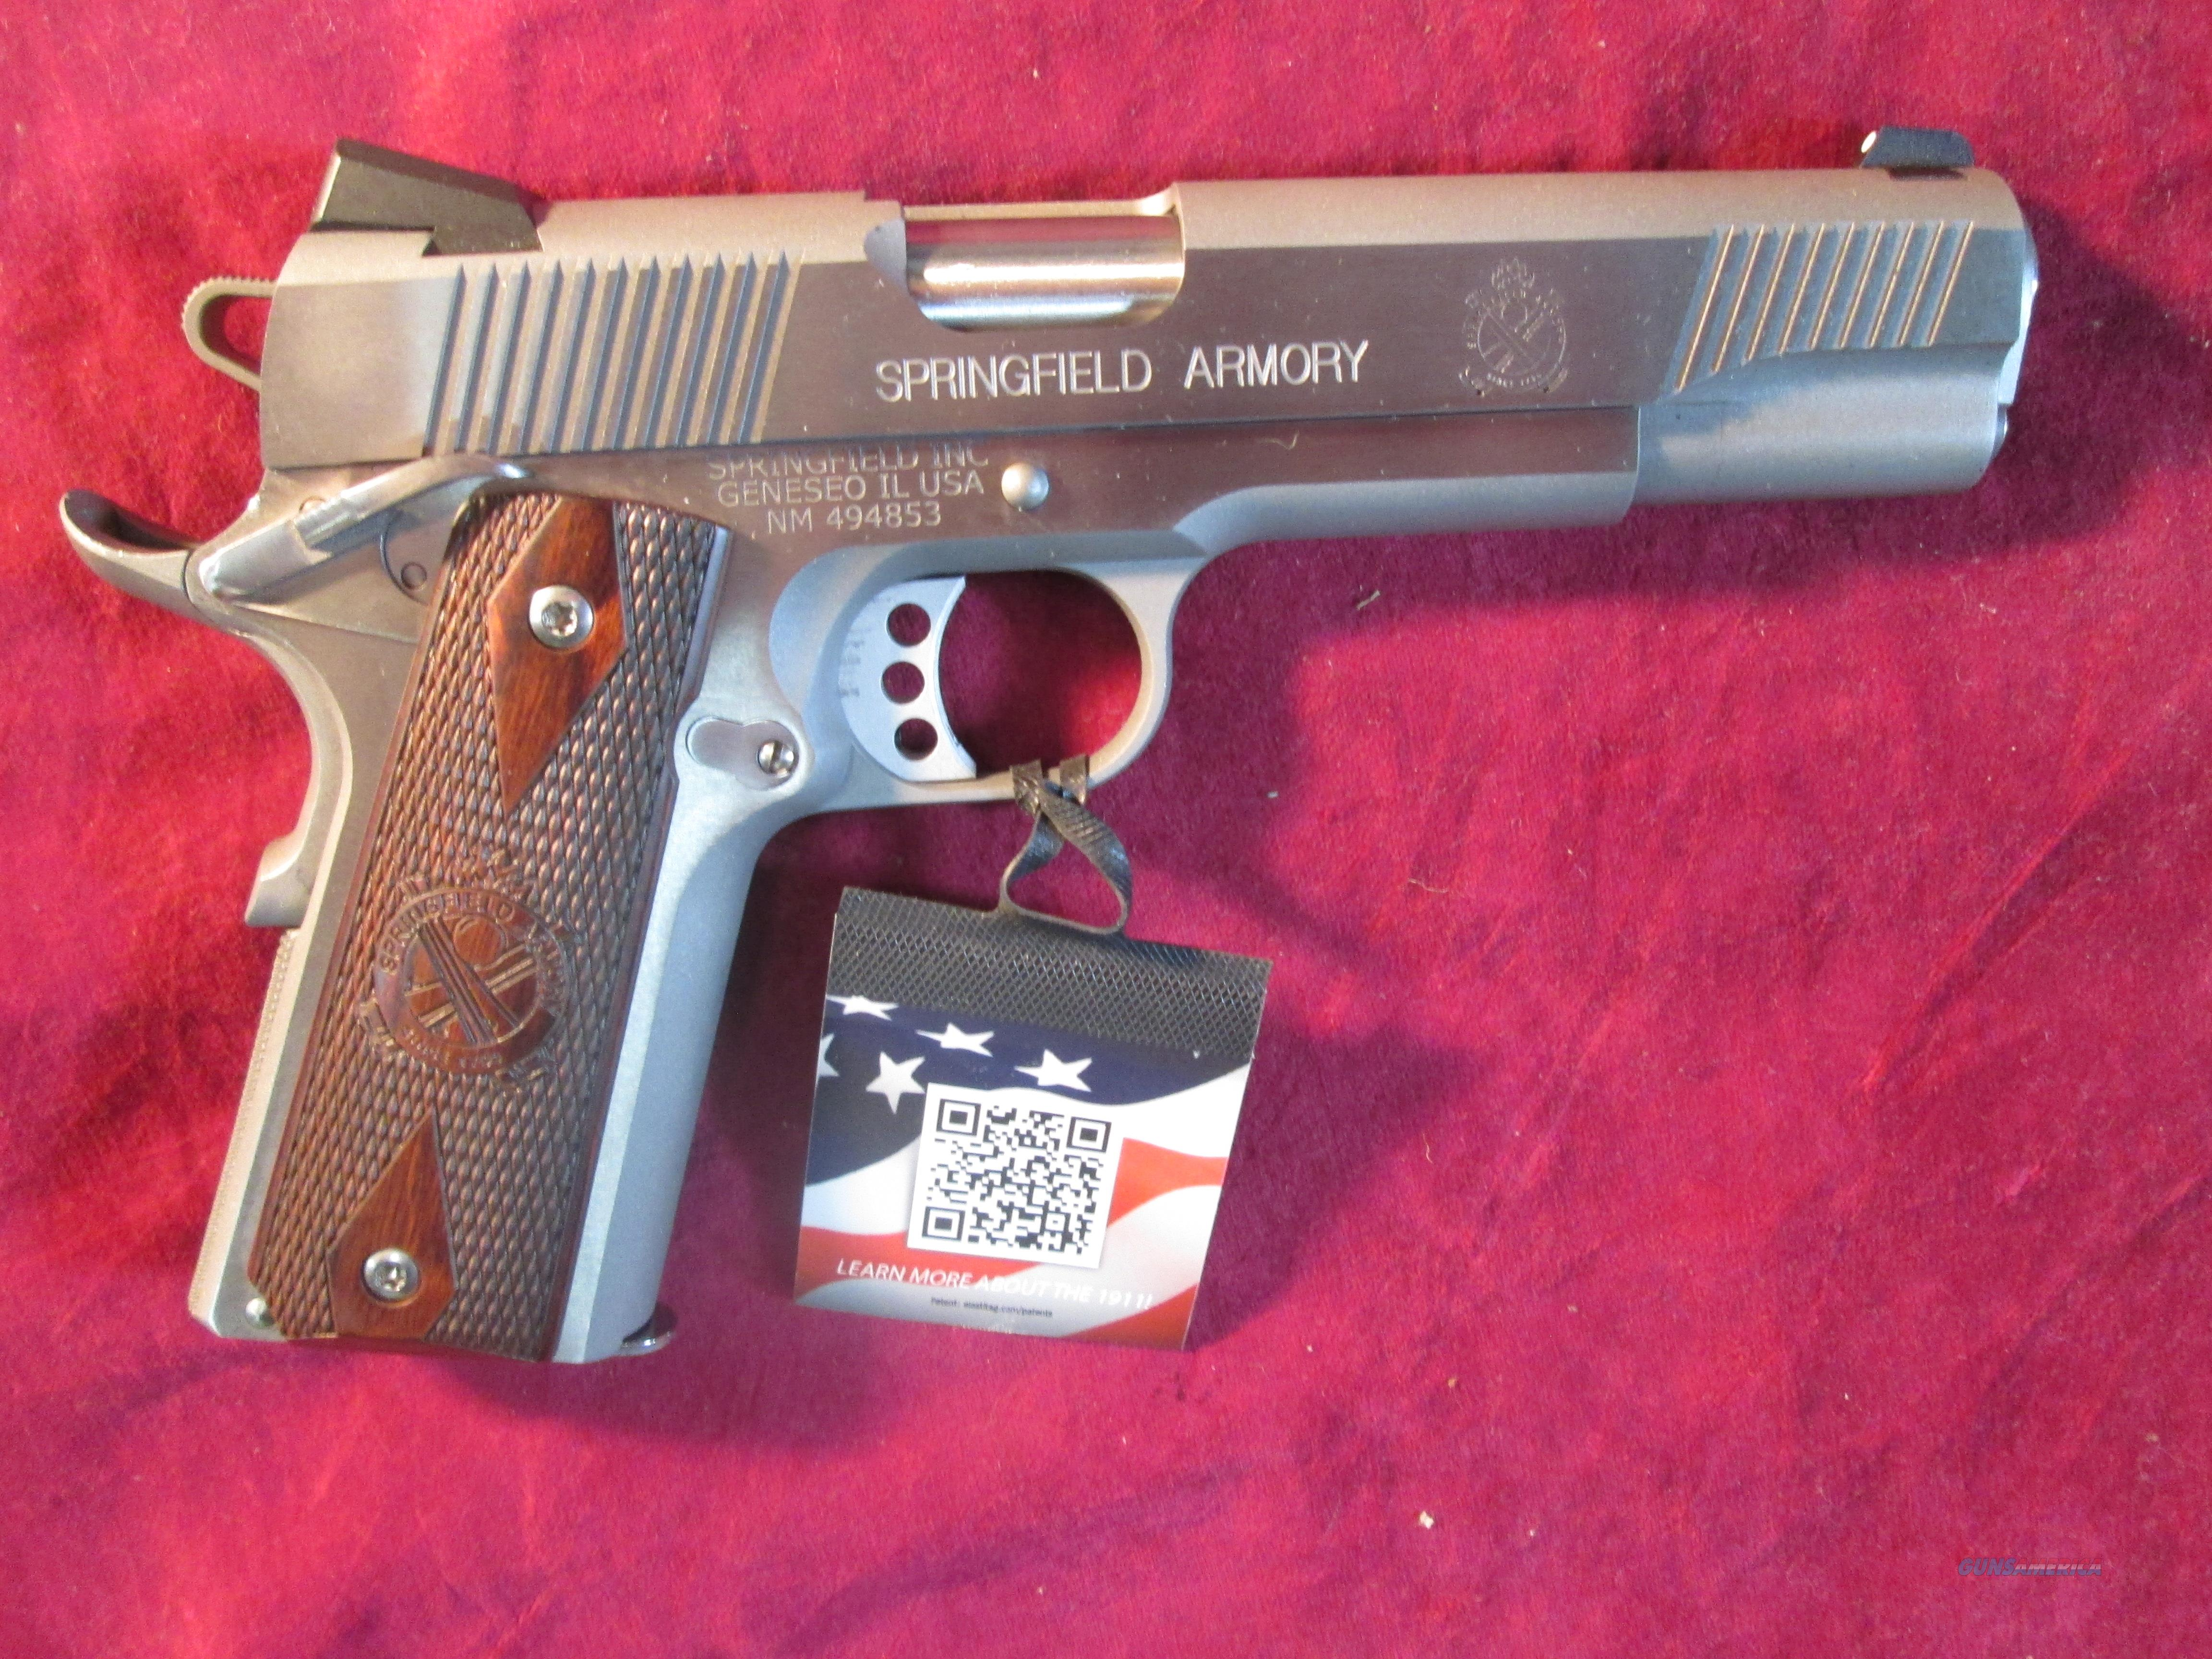 SPRINGFIELD ARMORY 1911 LOADED STAINLESS 45ACP W/ 3 DOT SIGHTS NEW (PX9151L)  Guns > Pistols > Springfield Armory Pistols > 1911 Type